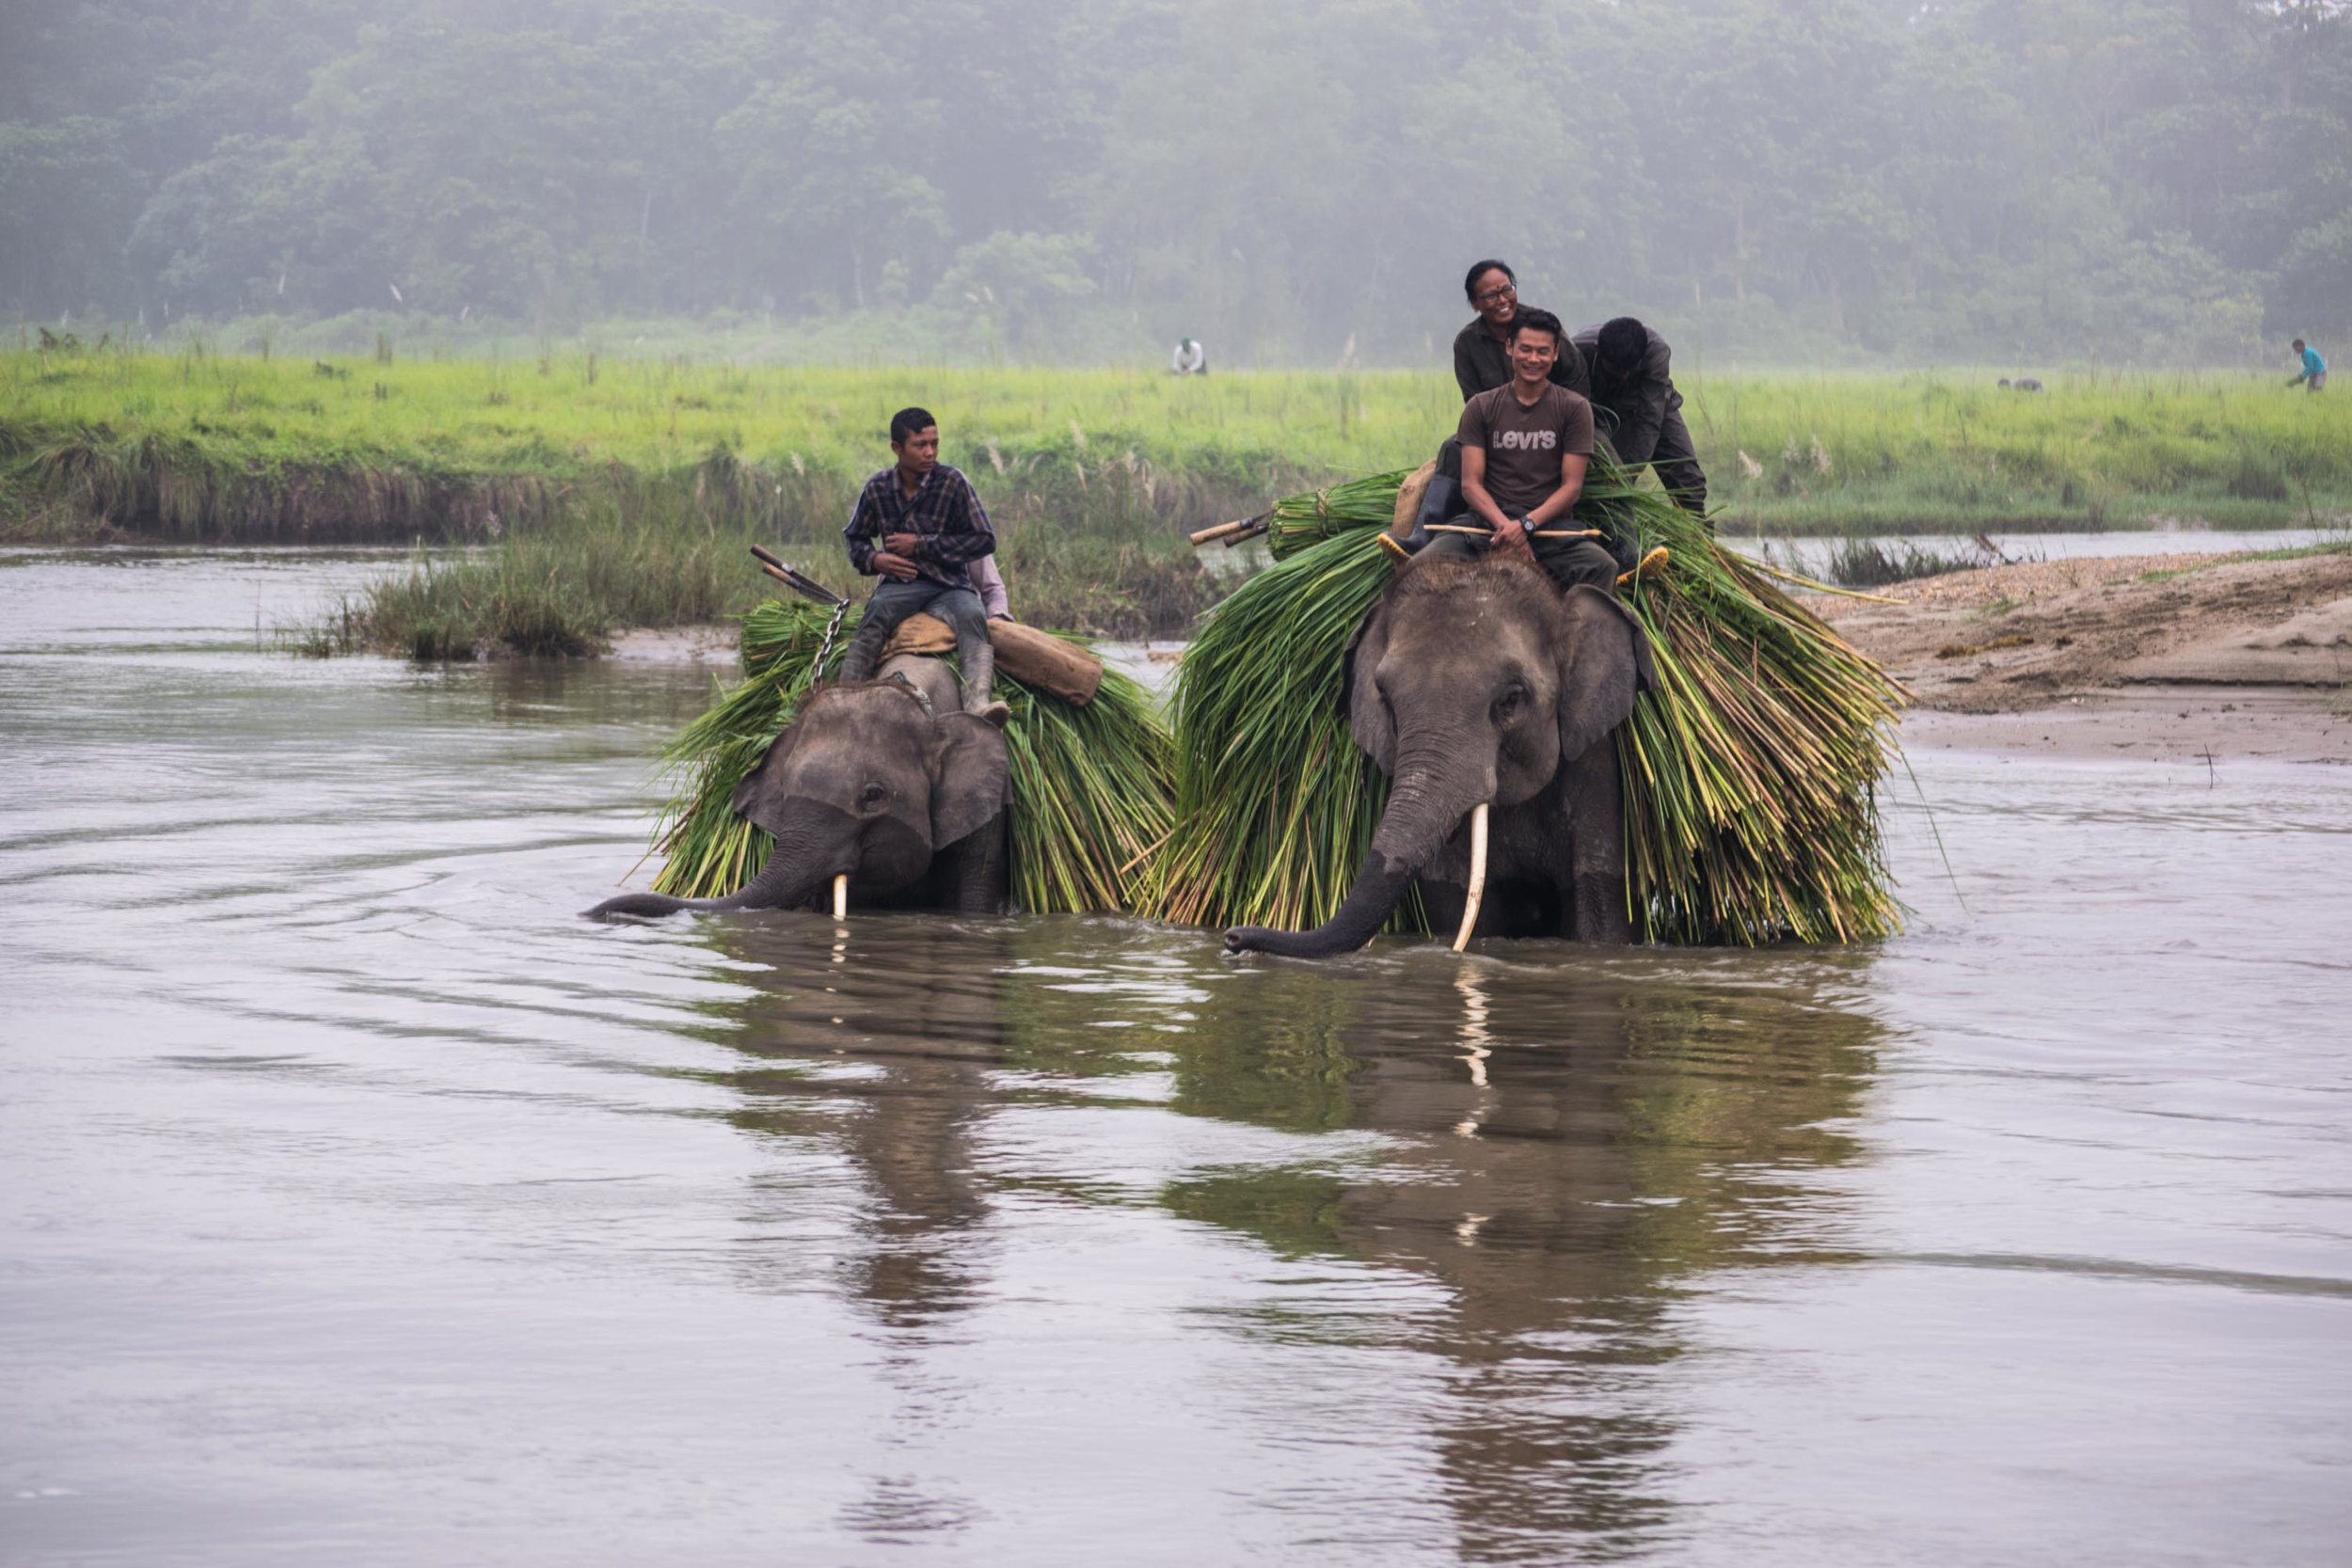 Elephants In The River (1 of 1).jpg